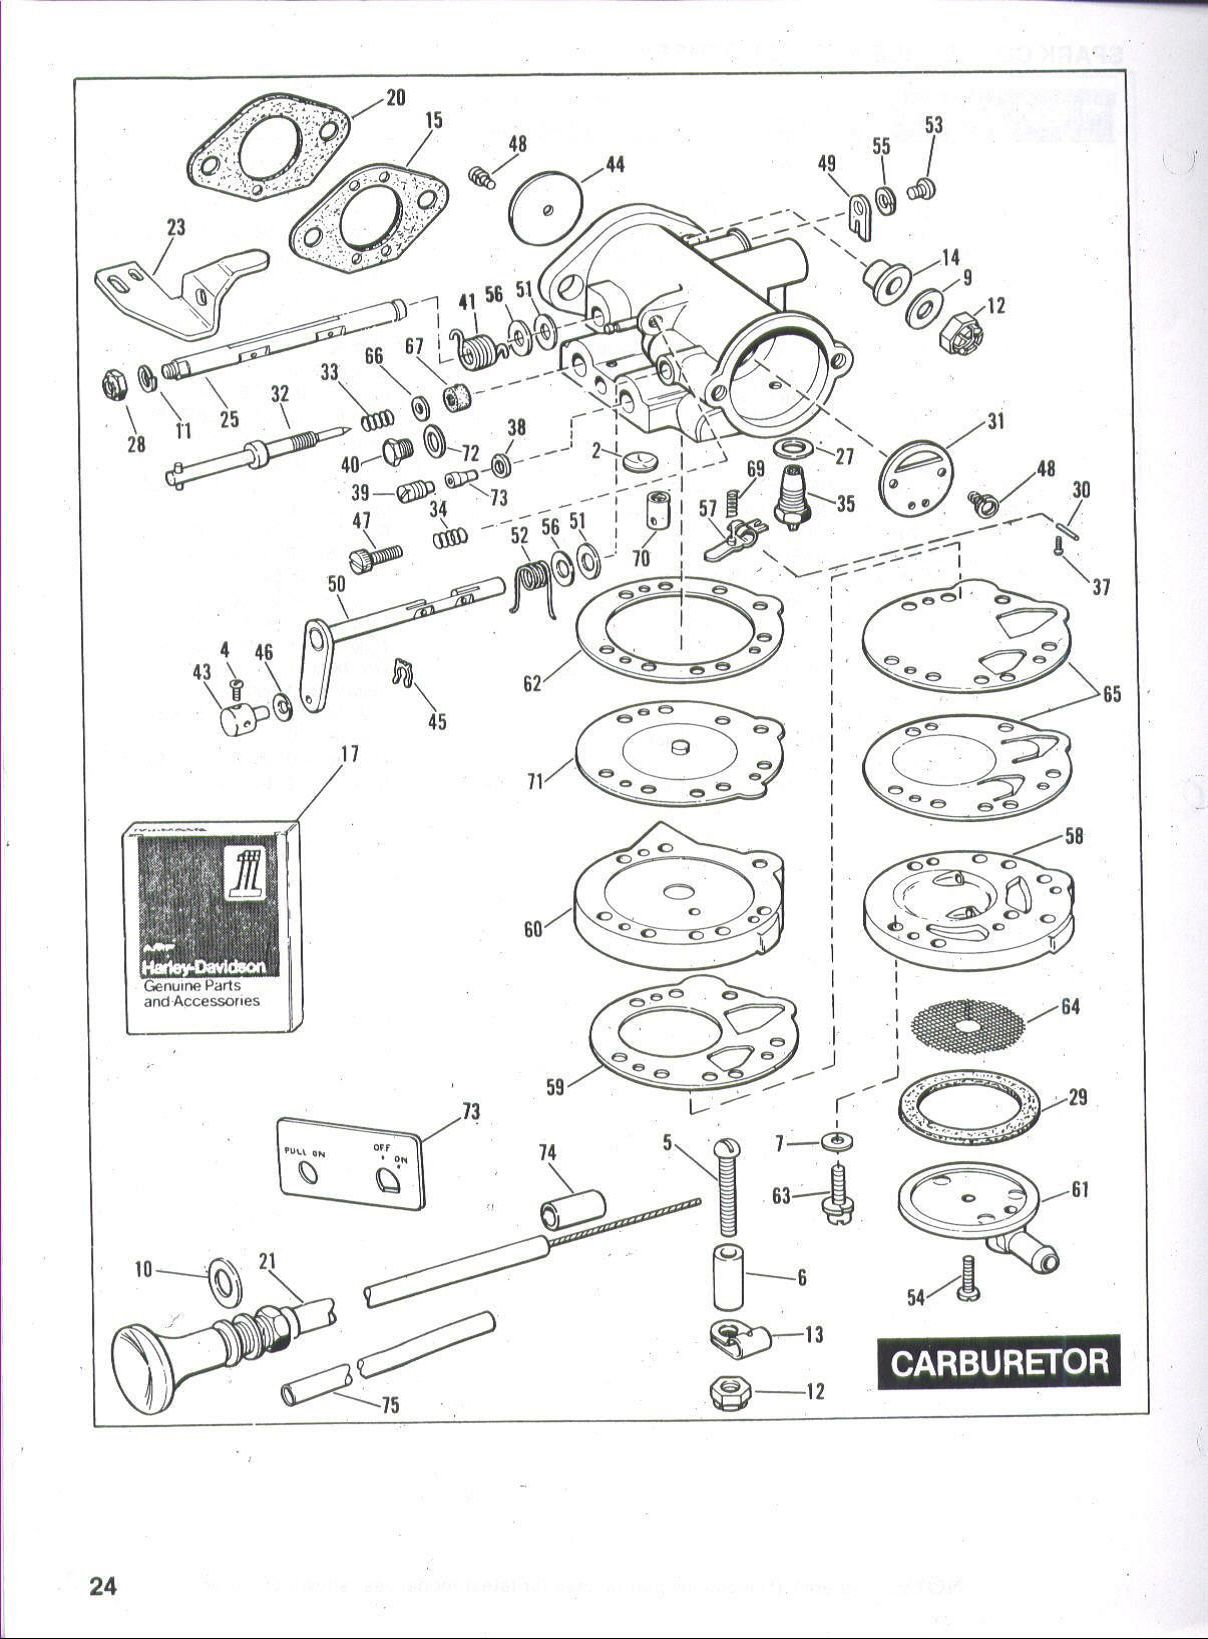 hight resolution of 1340 evo engine diagram wiring library 1995 harley davidson sportster wiring diagram